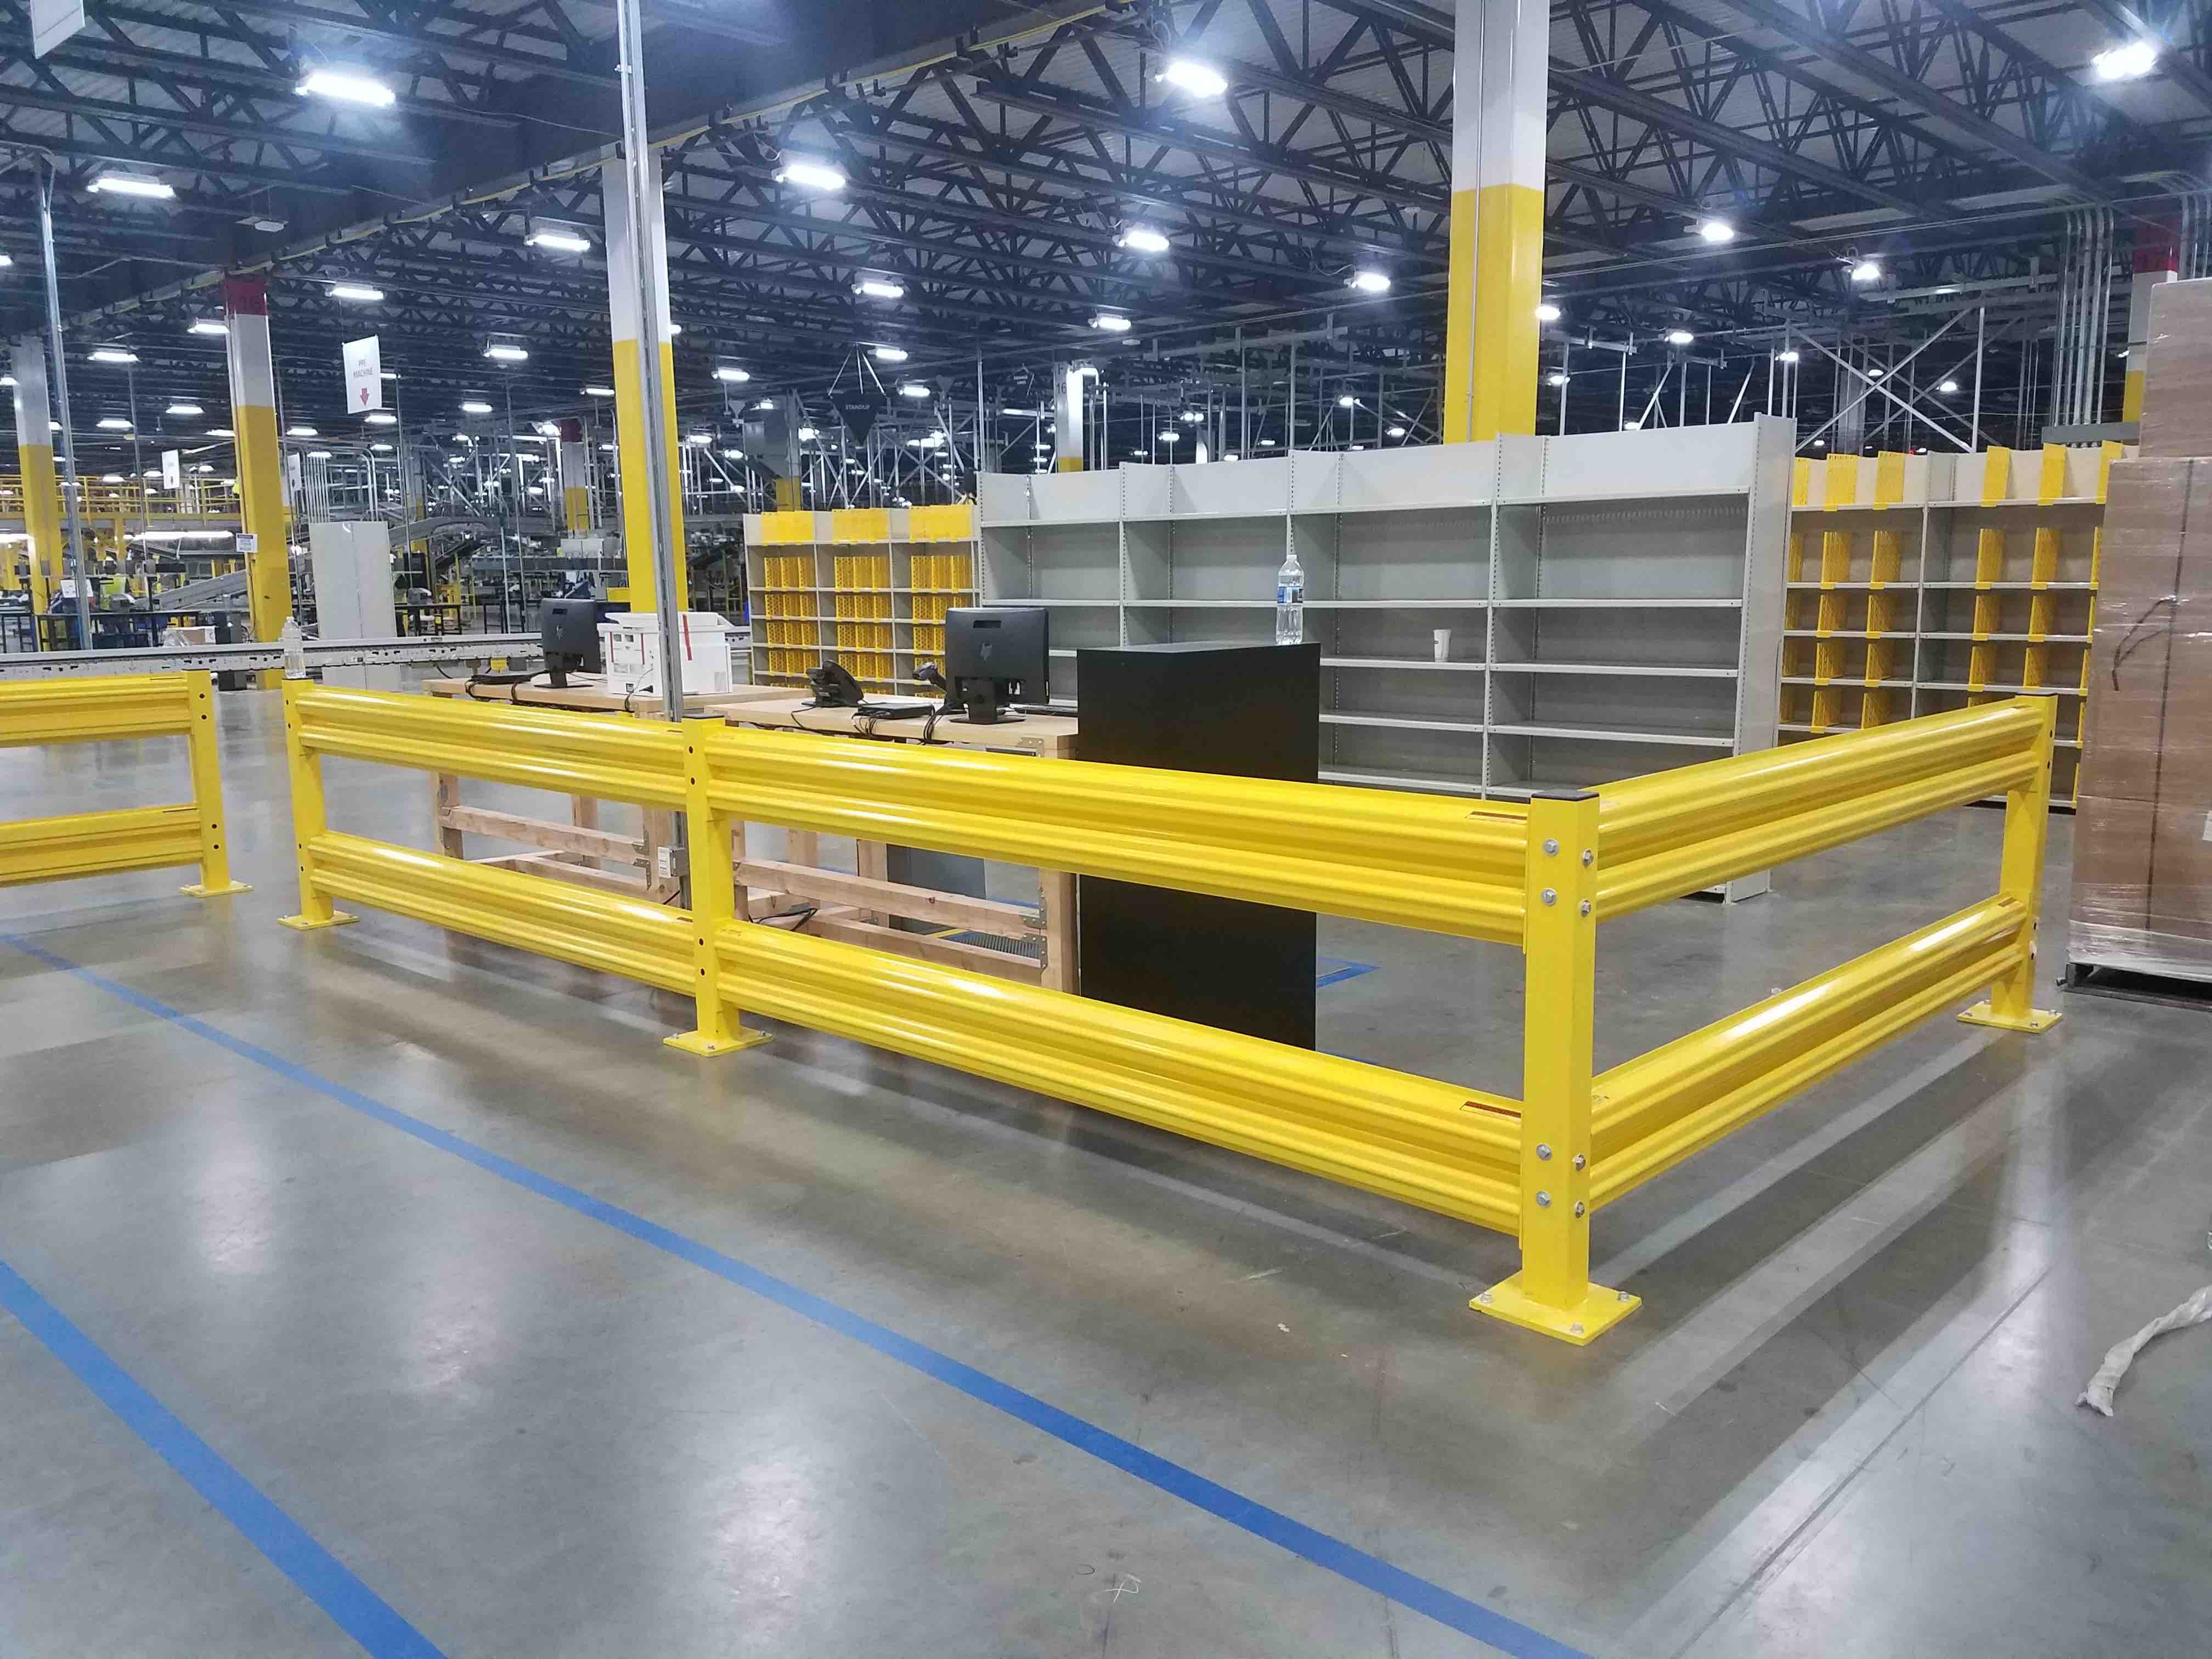 OSHA tall yellow safety rail protecting desk with computers from shipping warehouse floor